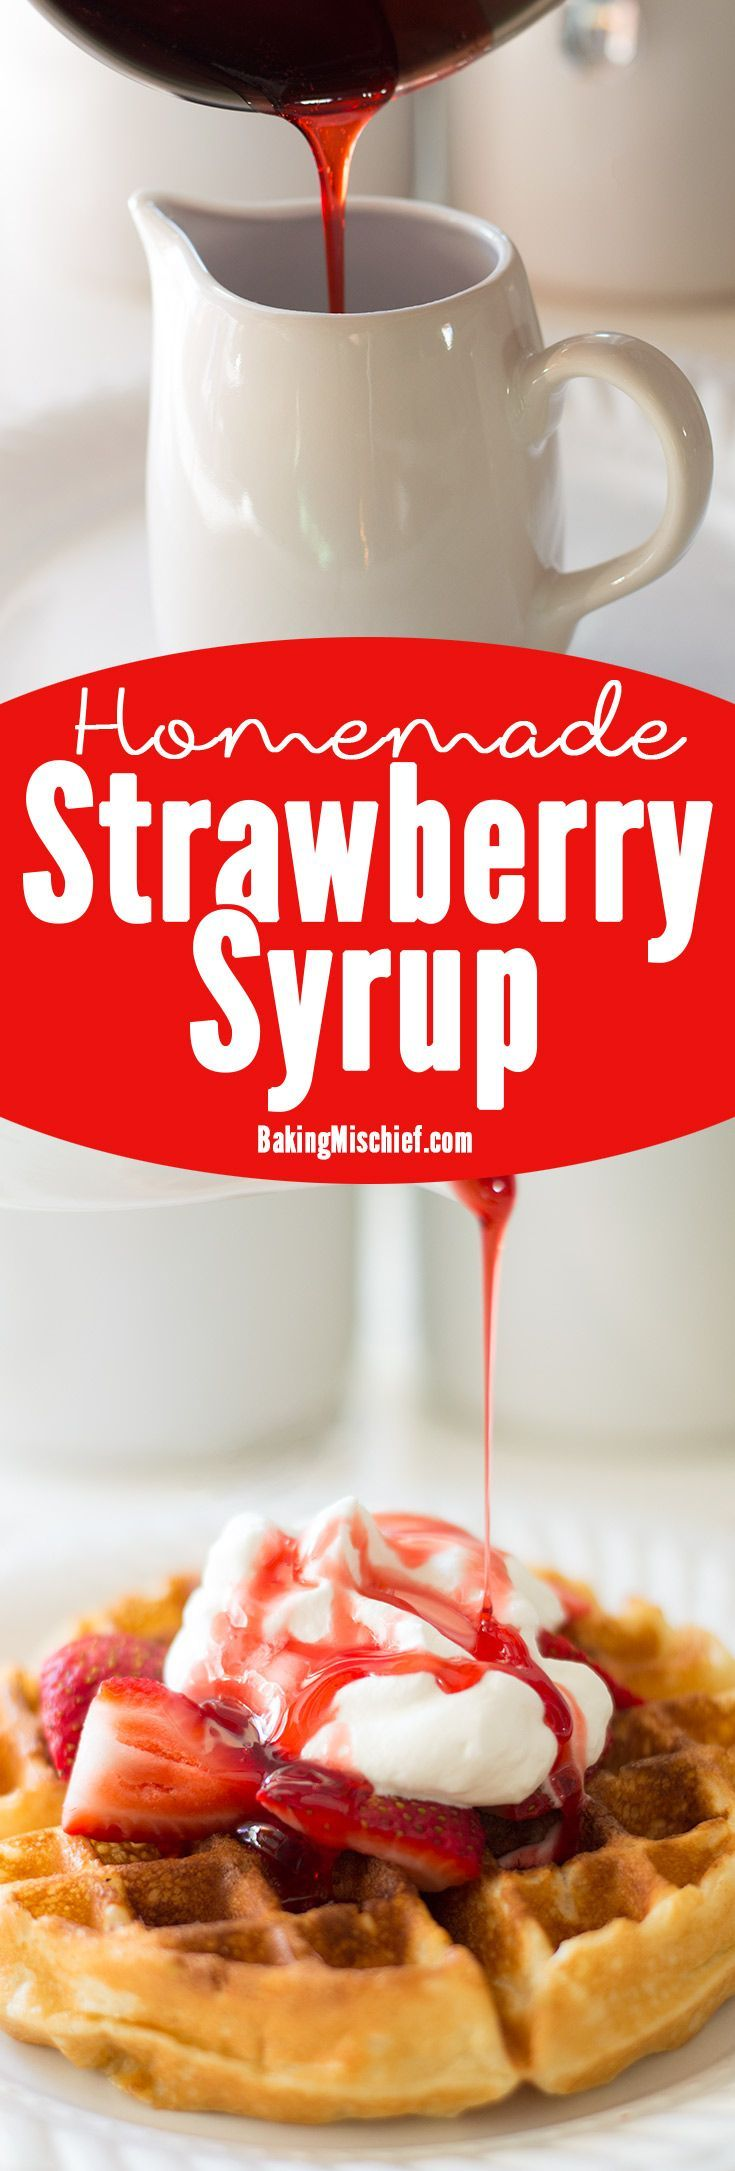 Quick and easy homemade strawberry syrup, perfect for serving over waffles, pancakes, or ice cream. Recipe includes nutritional information. From http://BakingMischief.com